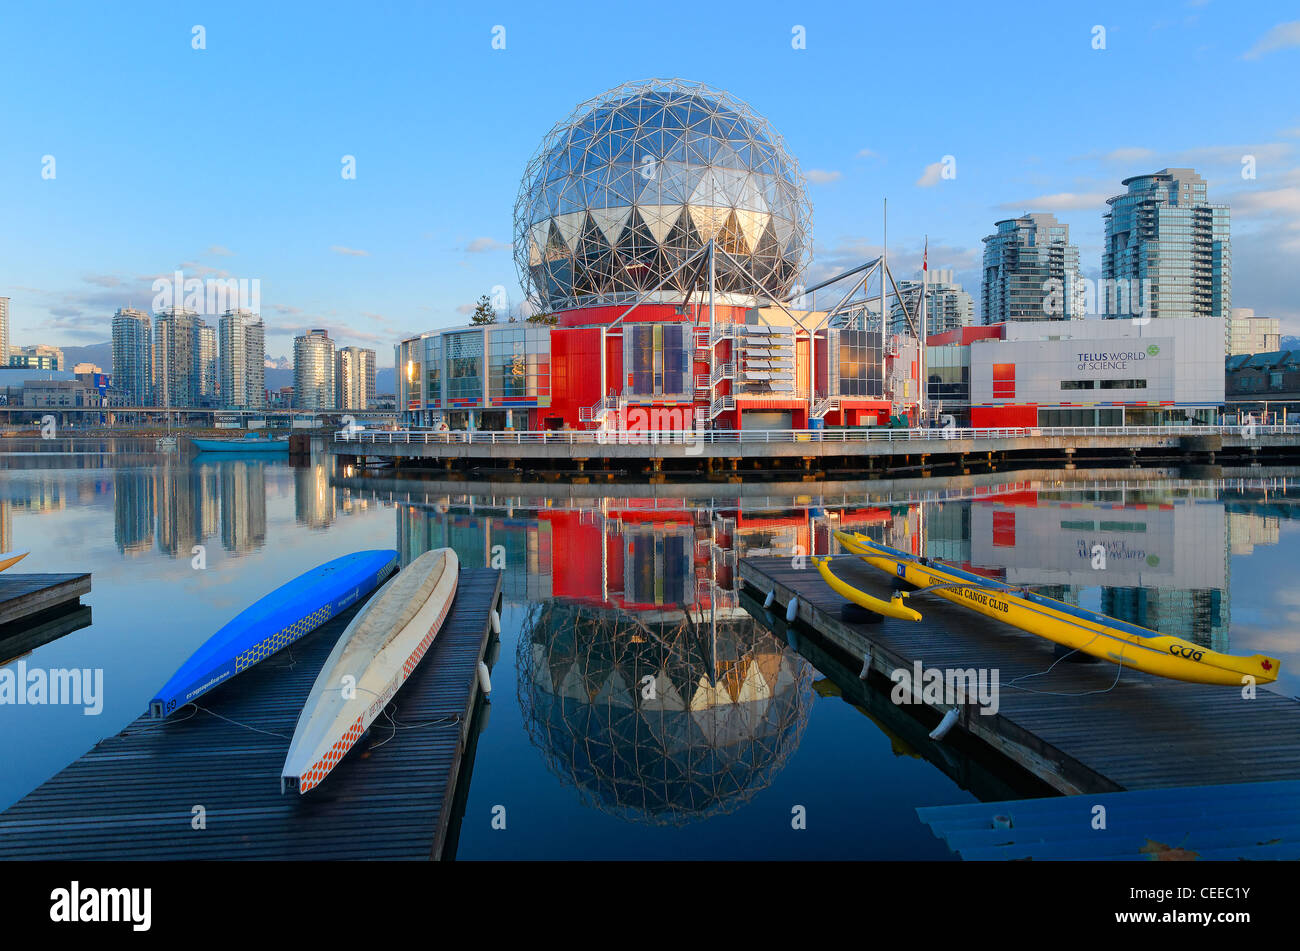 World of Science, False Creek, Vancouver British Columbia, Canada - Stock Image